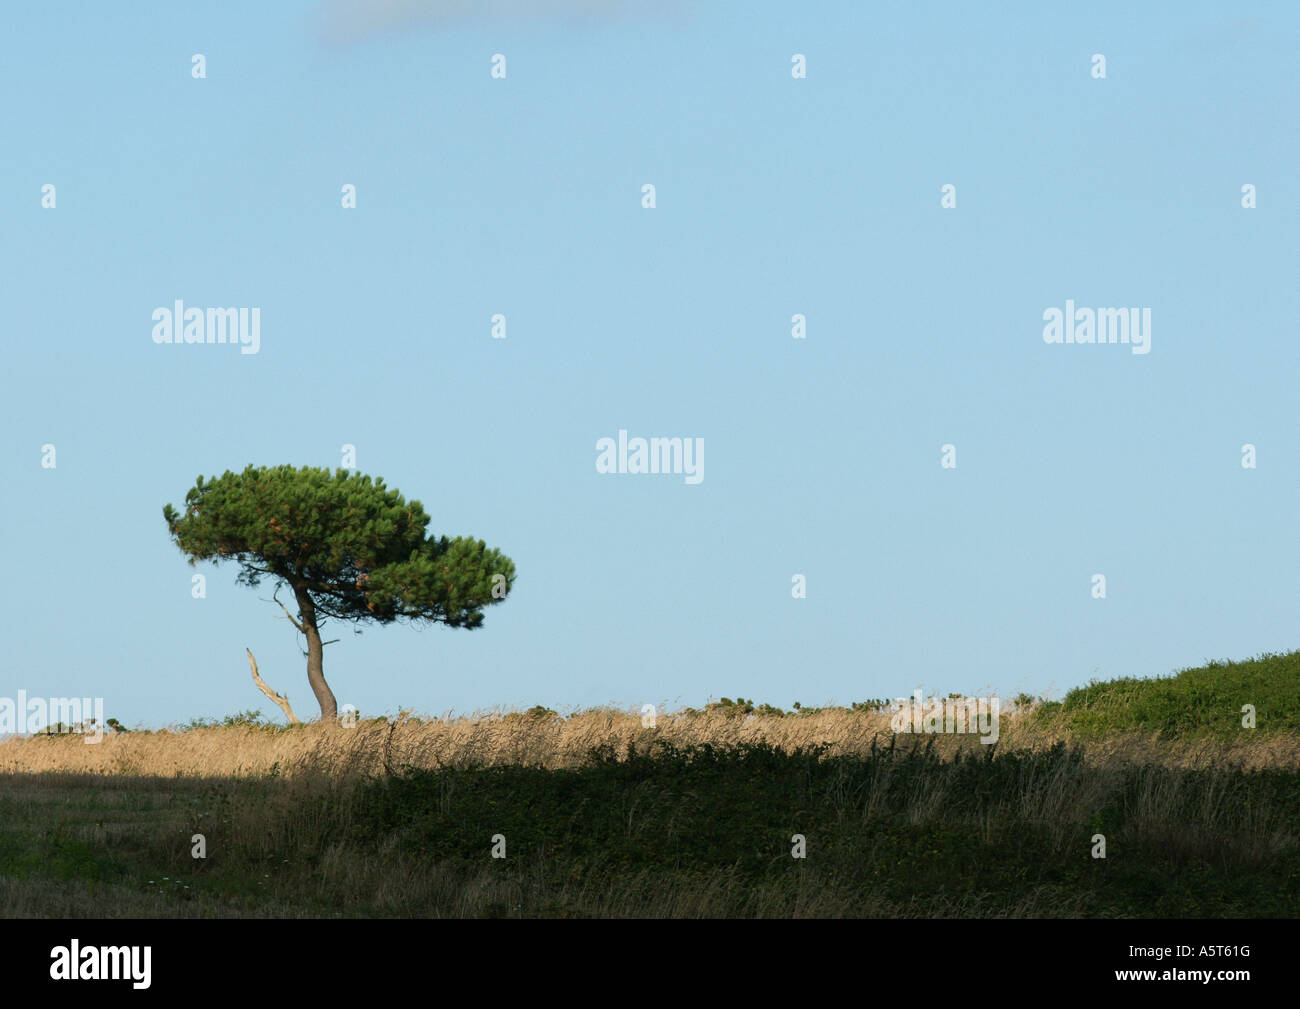 France, Brittany, pine tree in flat landscape - Stock Image